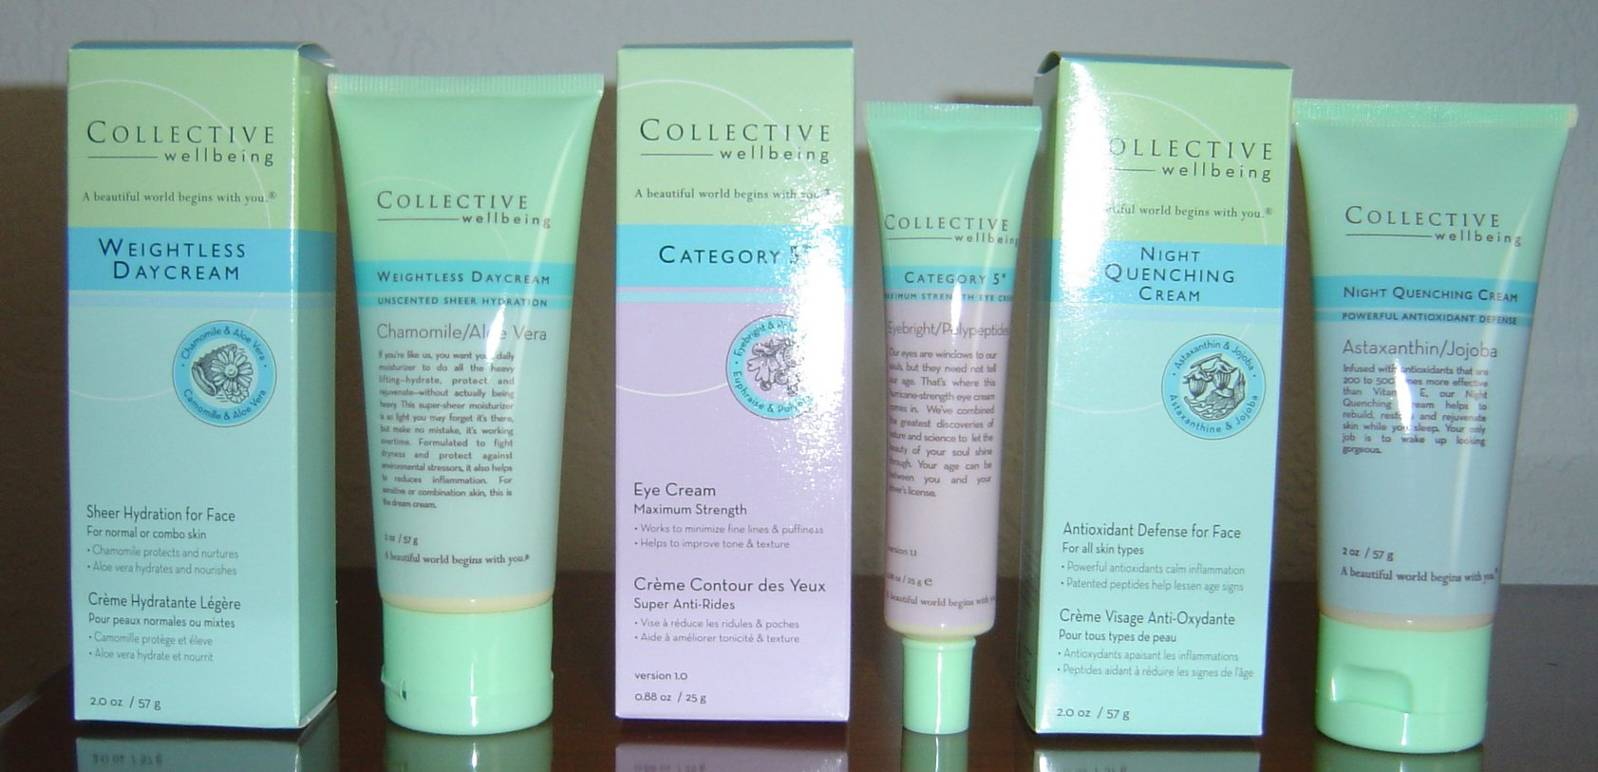 Collective Wellbeing Skin Care products assortment.jpeg